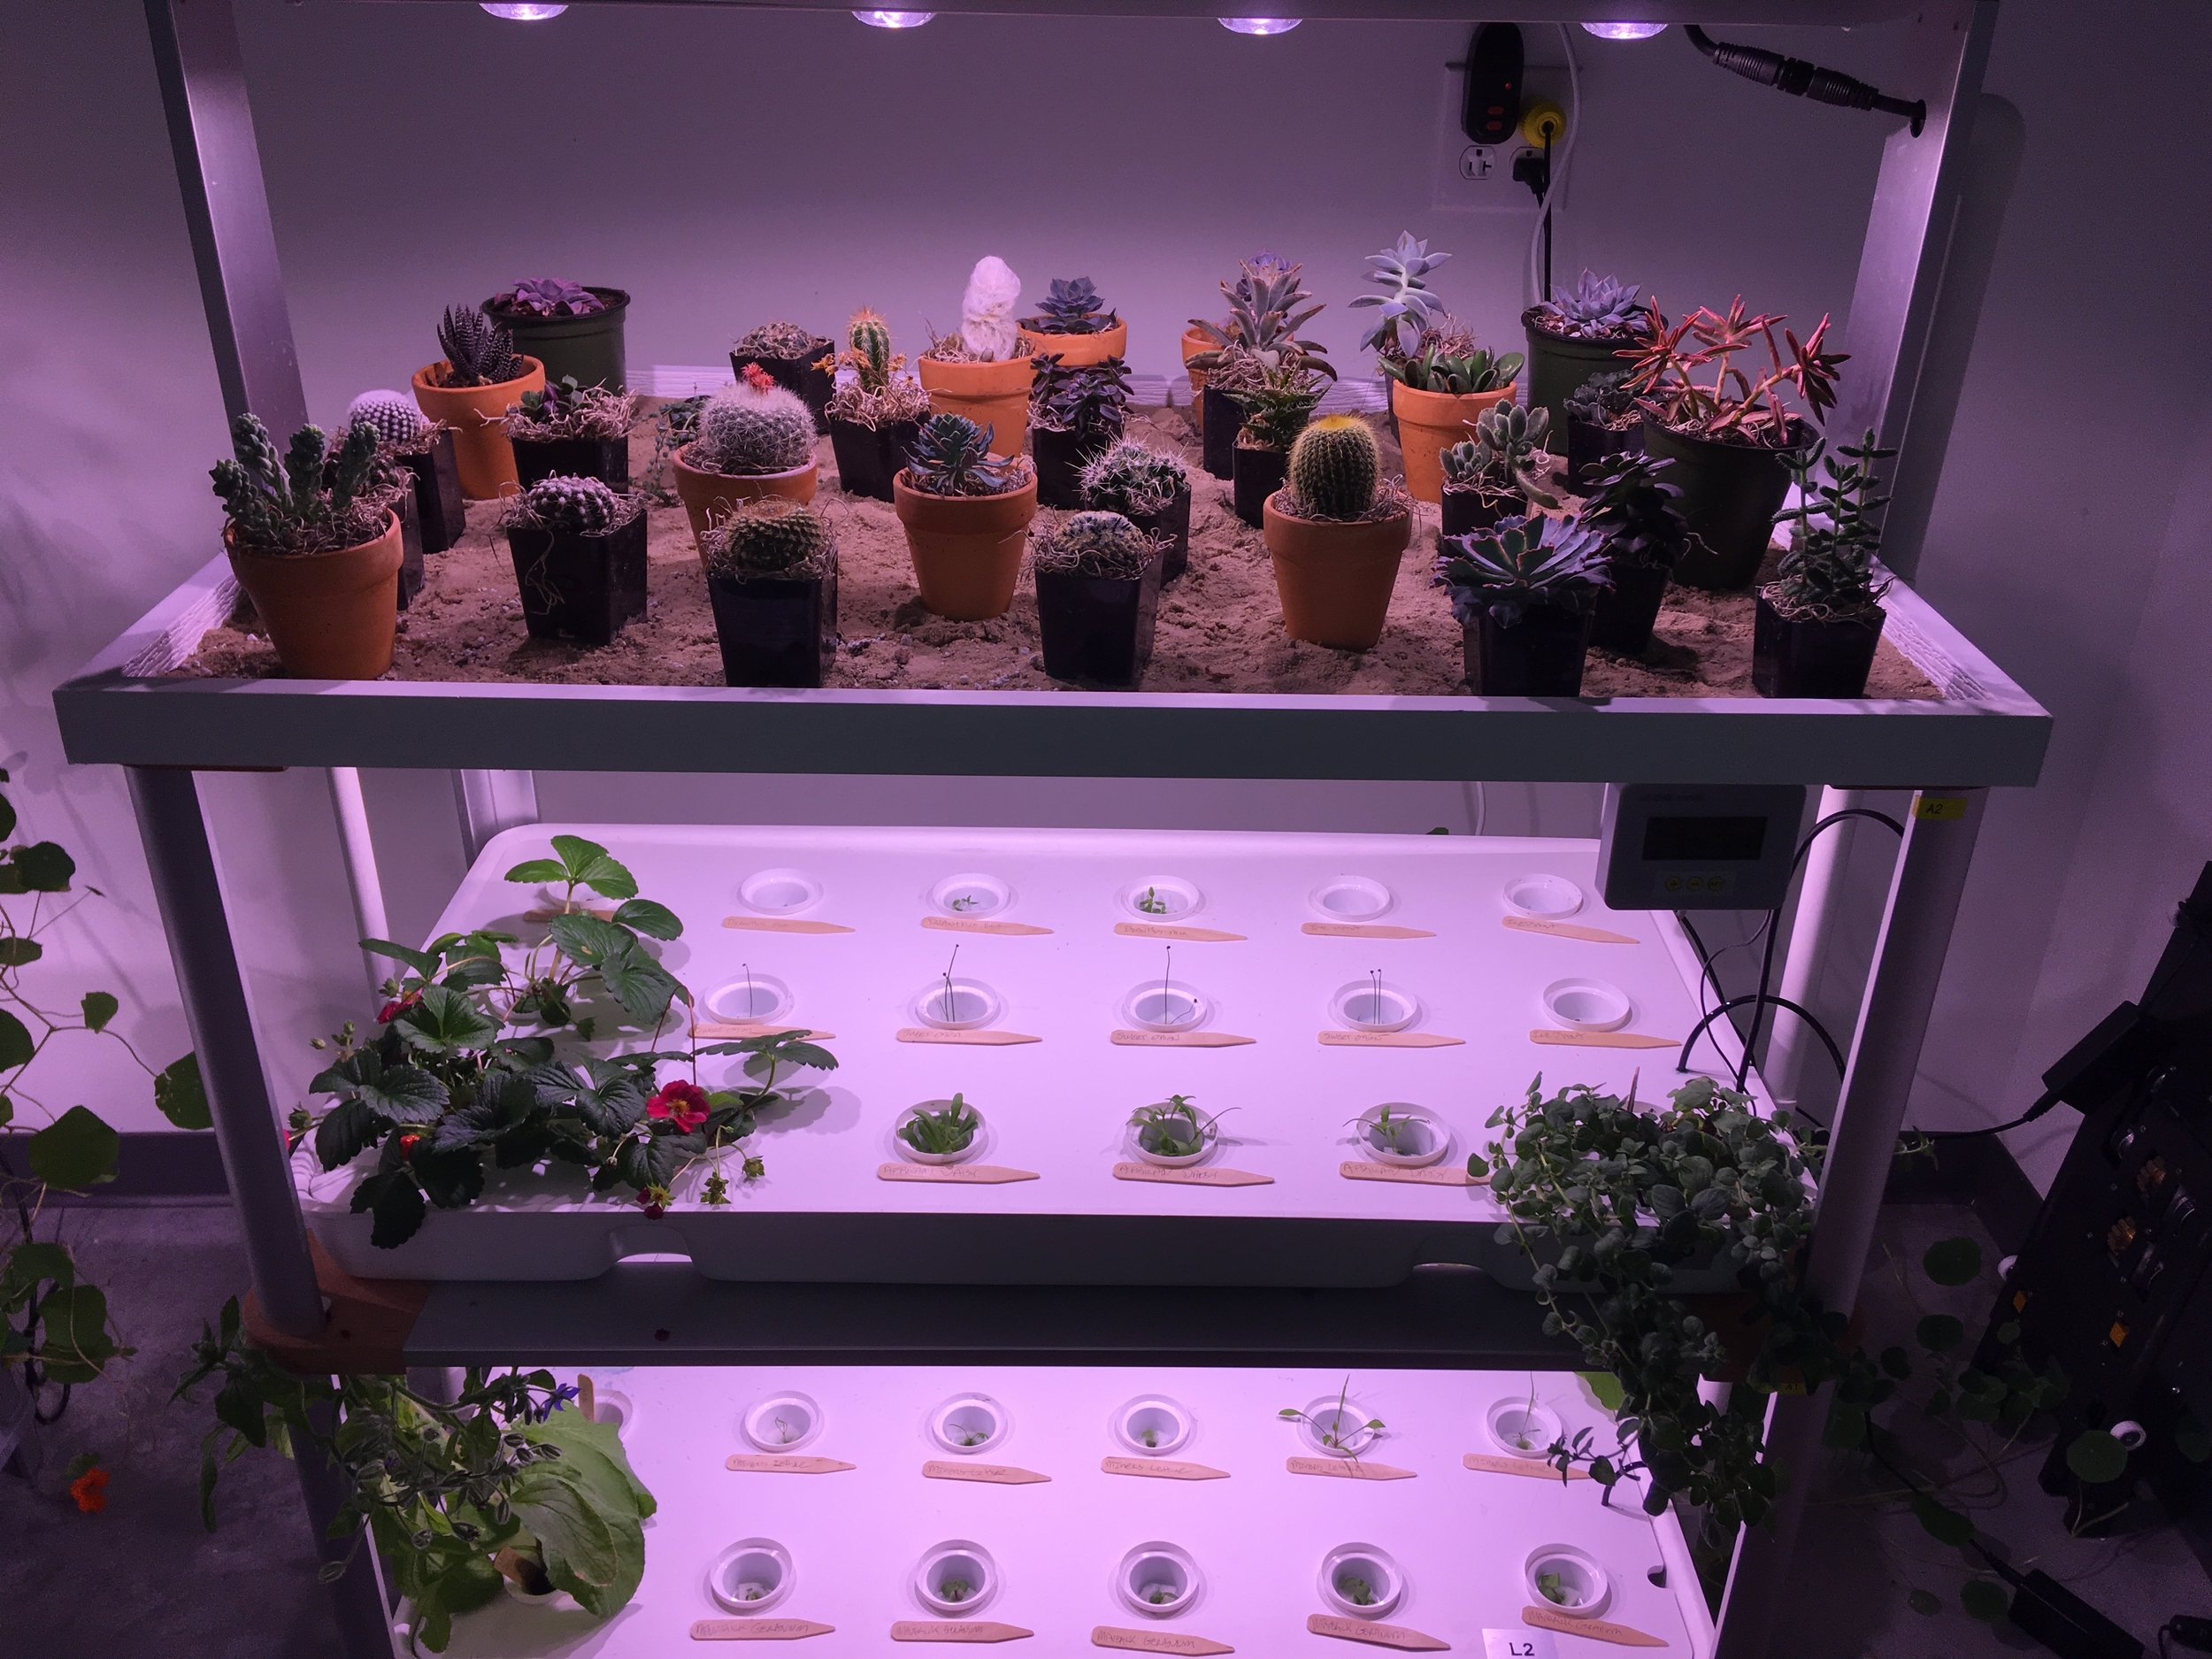 LF-ONE with the optional Geoponic tray growing cactus and succulents while the bottom two trays are growing various plants hydroponically. The quintessential juxtaposition!